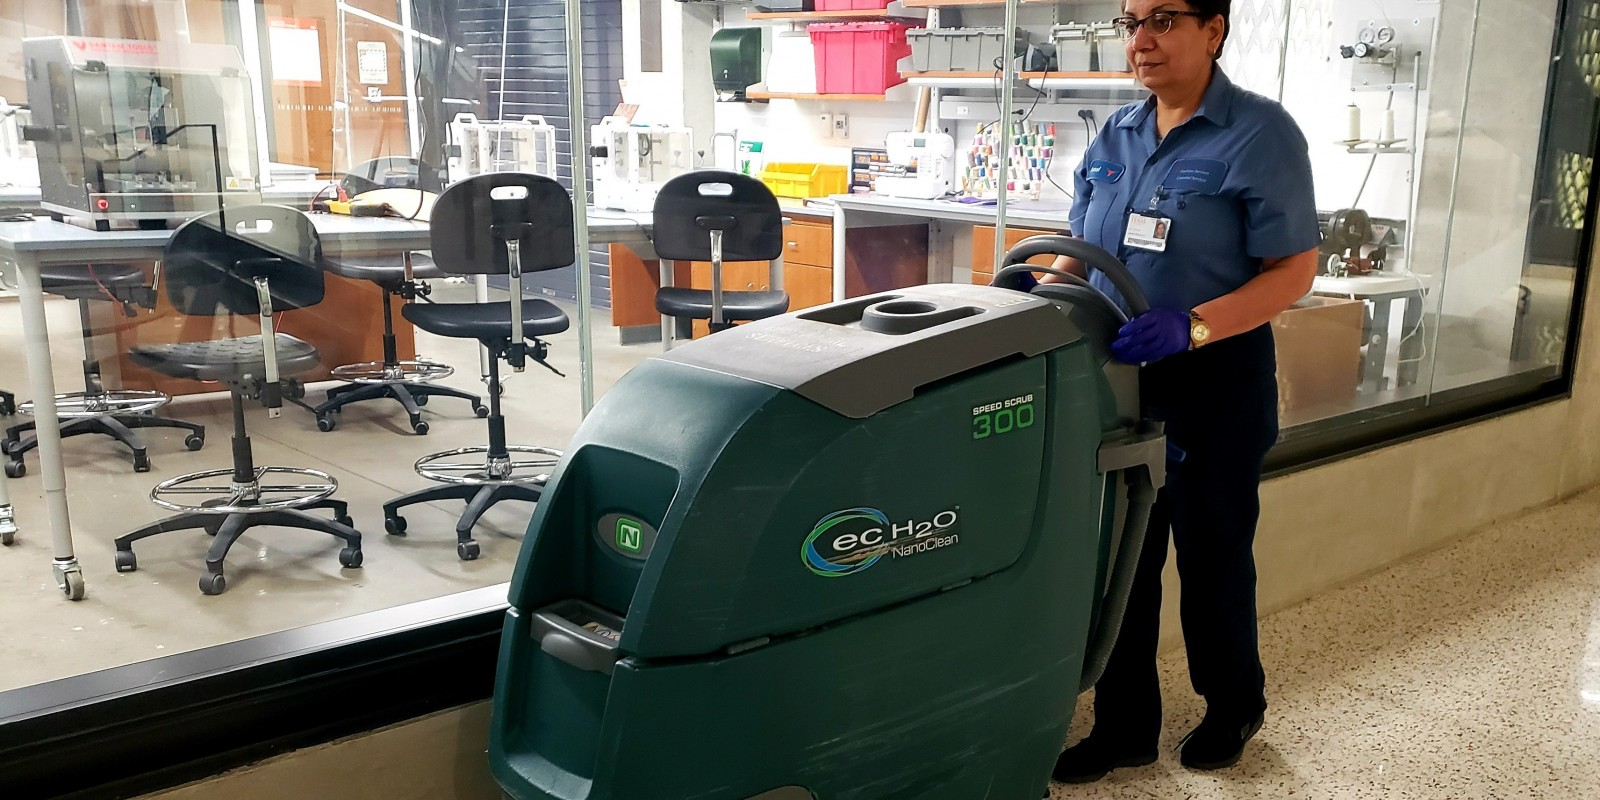 Image of Amal Abraham (Custodial Services) using a floor scrubber